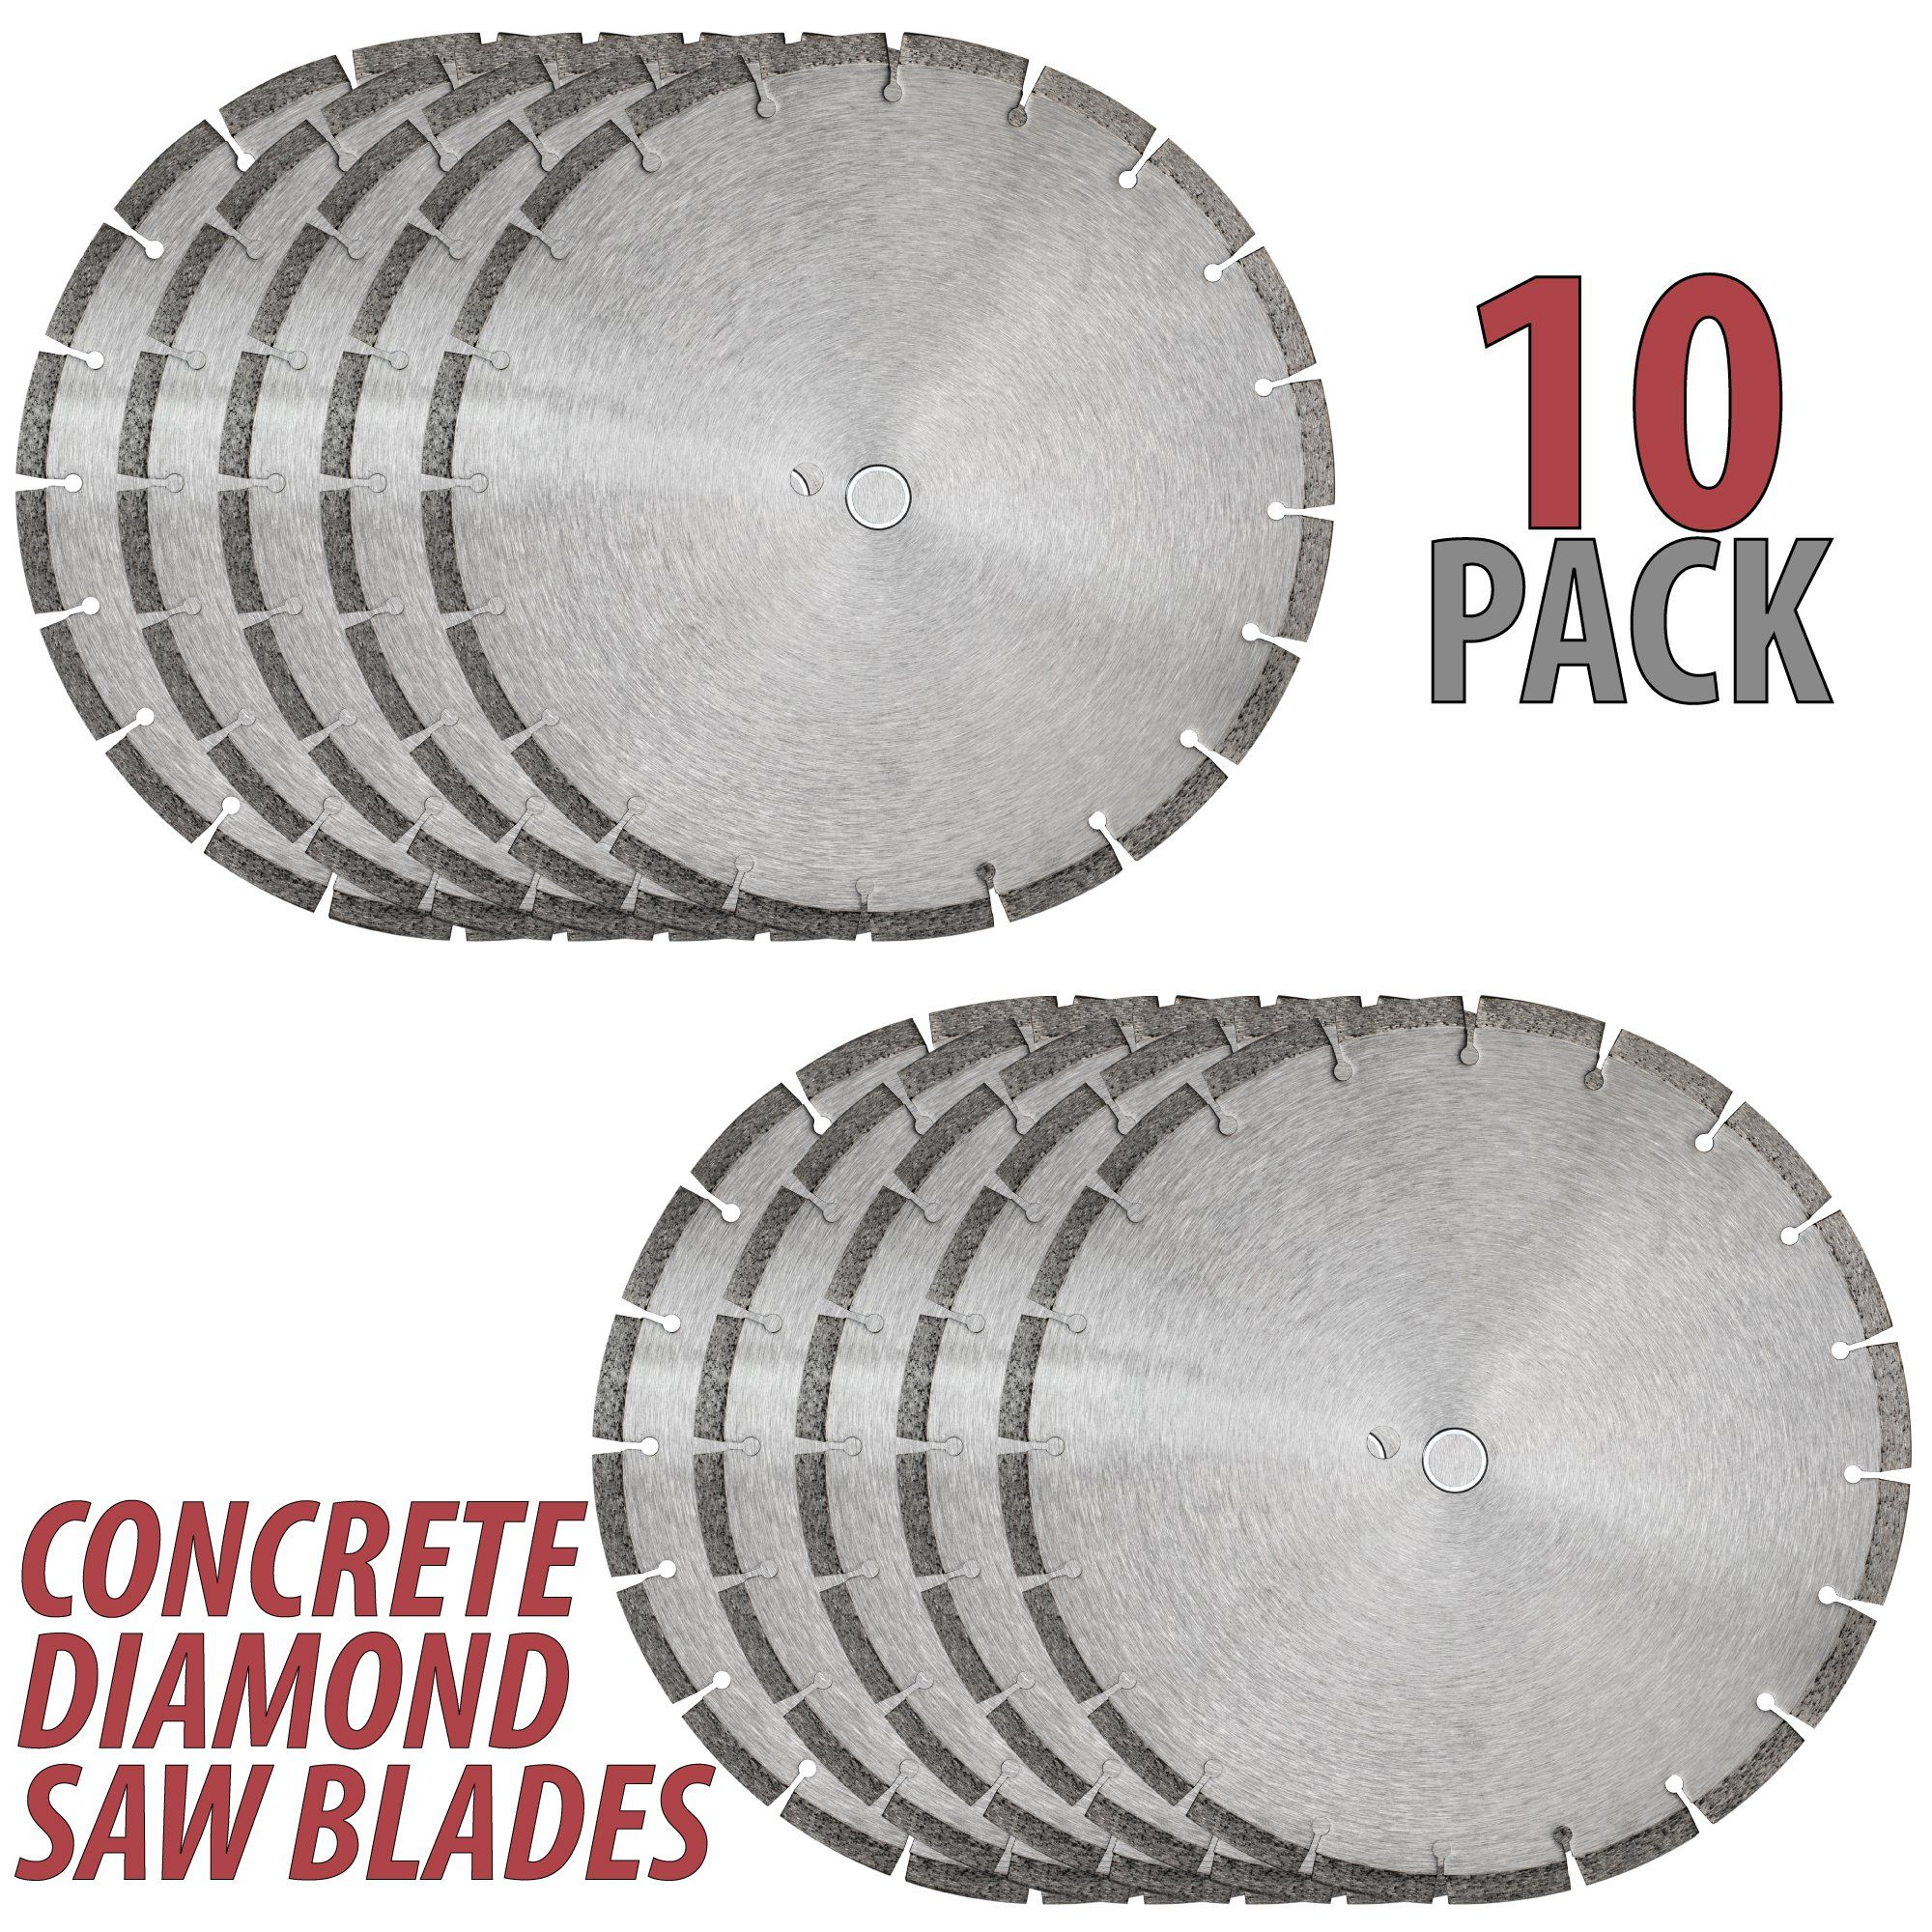 10 Qty 14 Diamond Saw Blade Concrete Brick Block Stone Rock Masonry 10mm Segment Details Can Be Found By Clicking On Th Concrete Bricks Concrete Brick Block